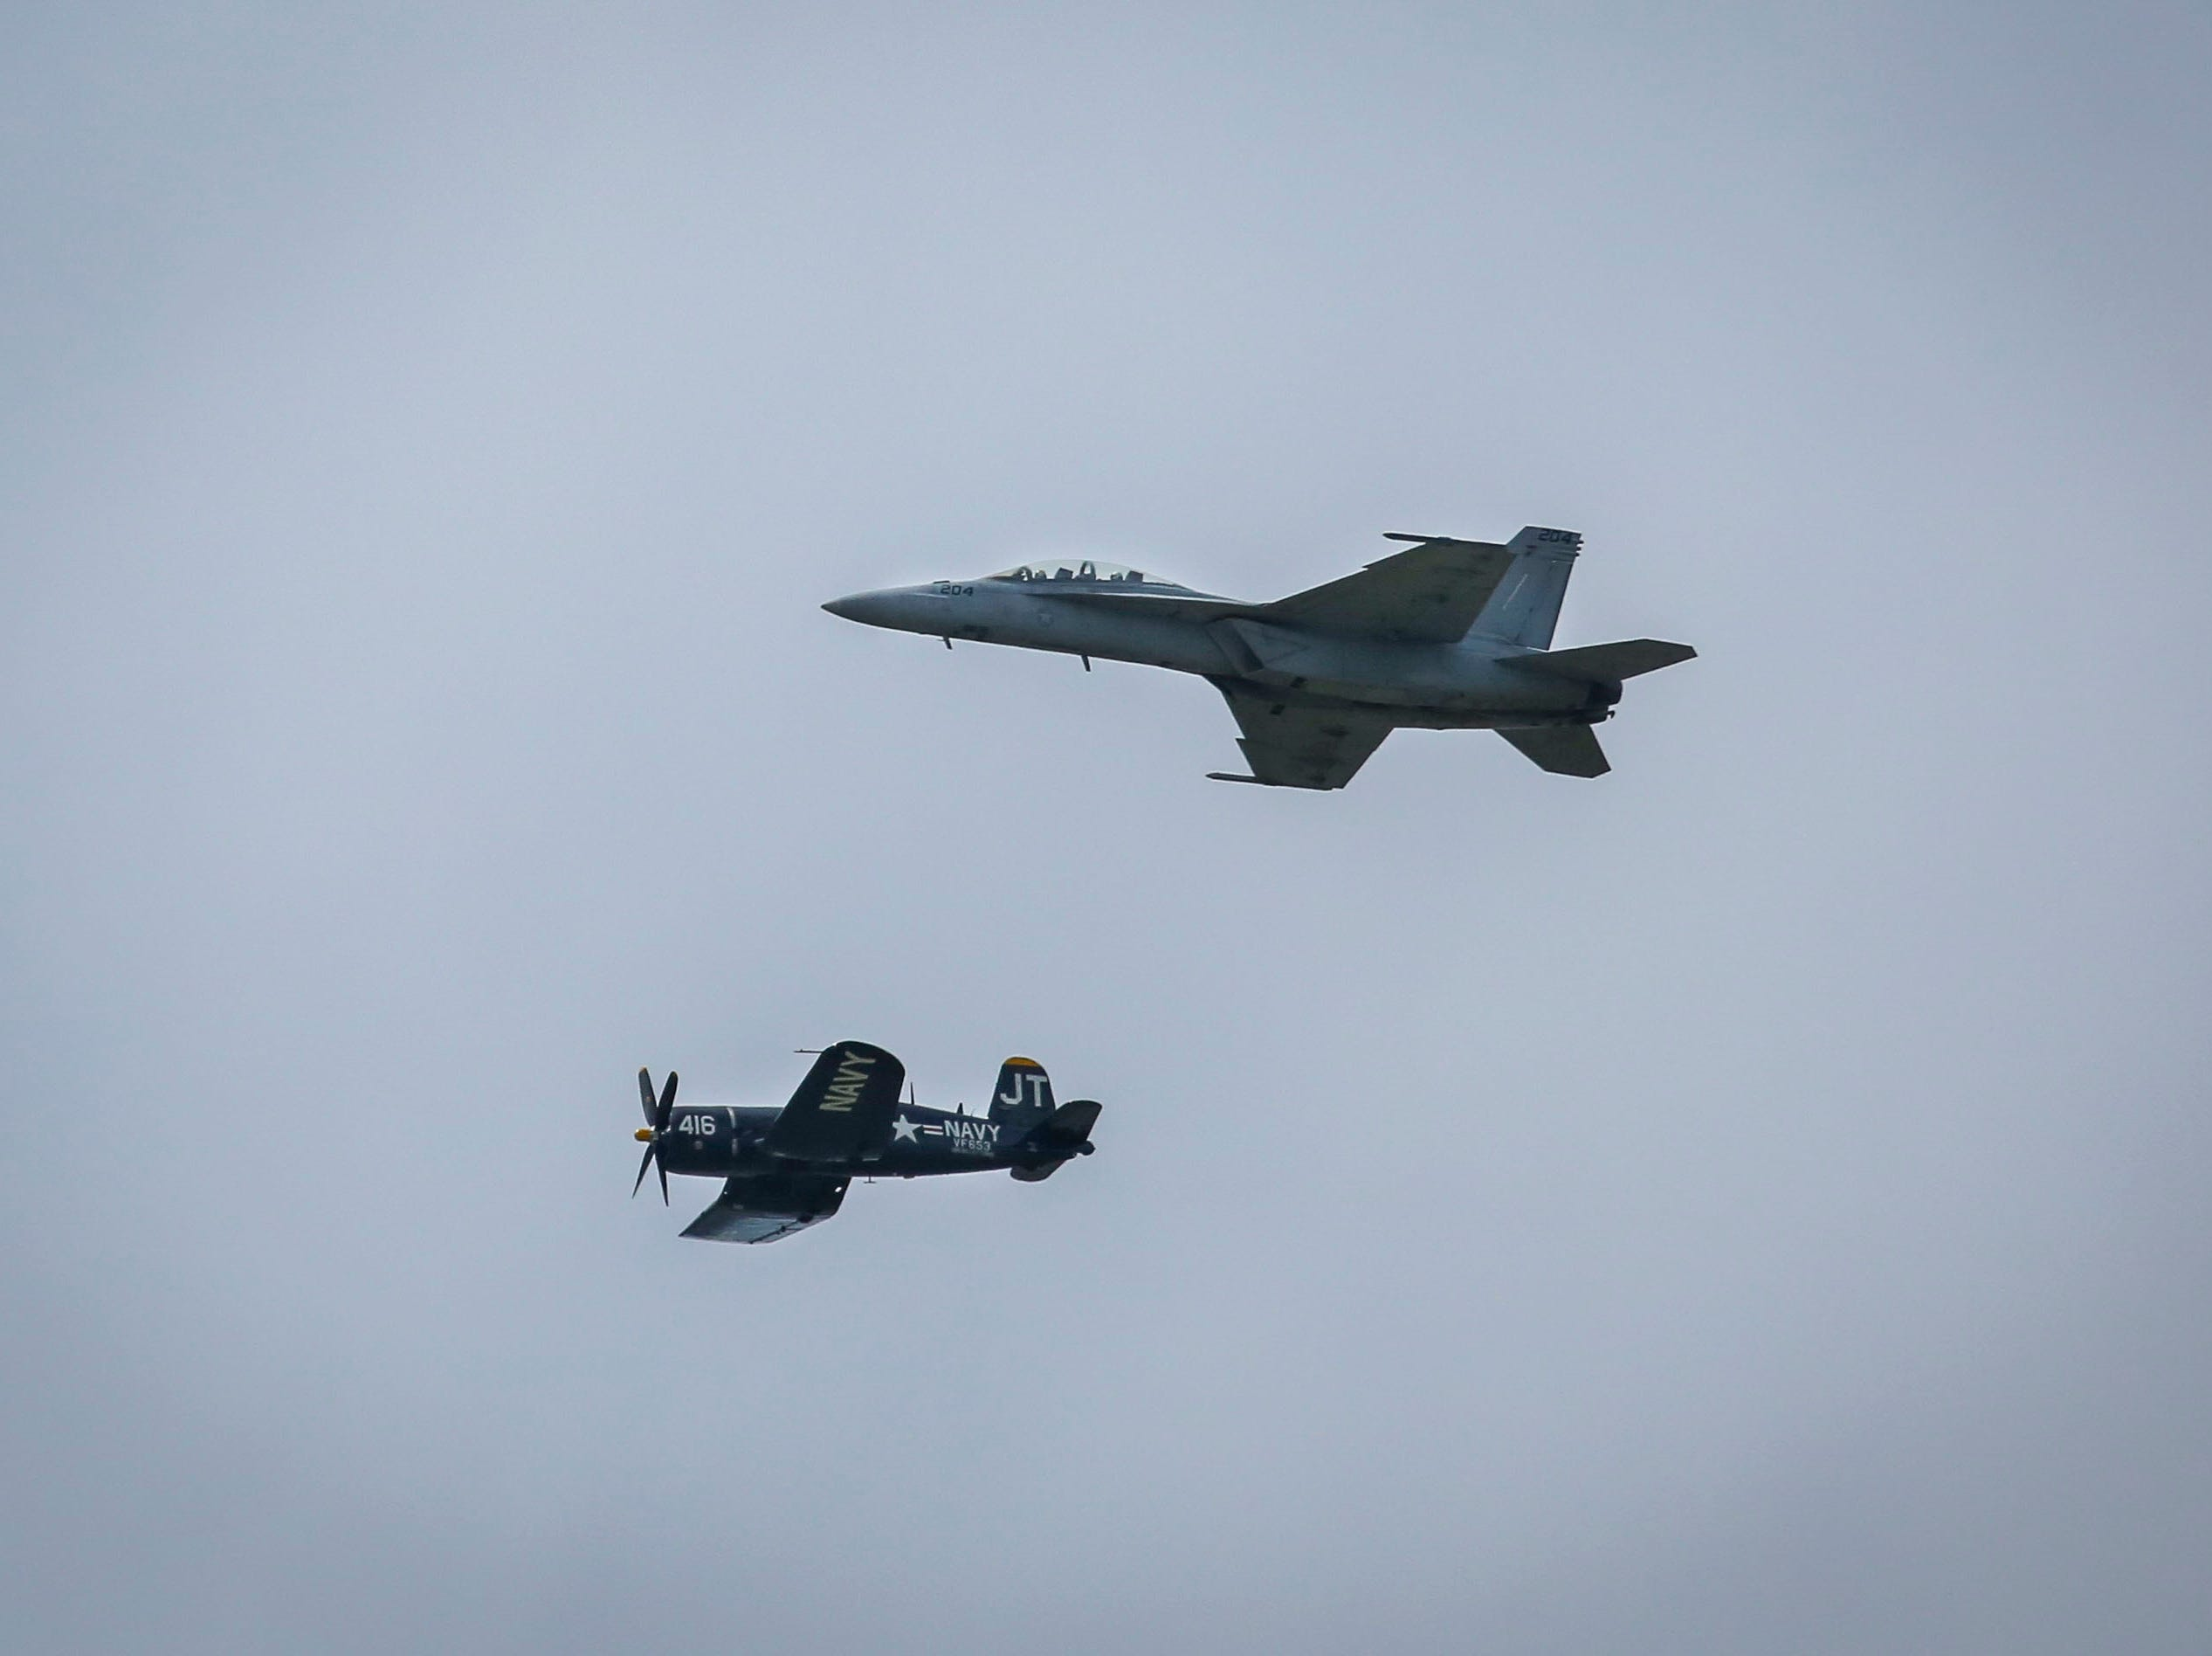 An F/A-18, right, and a Vought F4U, left, fly over the Ohio River during a practice ahead of Thunder Over Louisville in Louisville, Ky. on Friday, April 12, 2019.